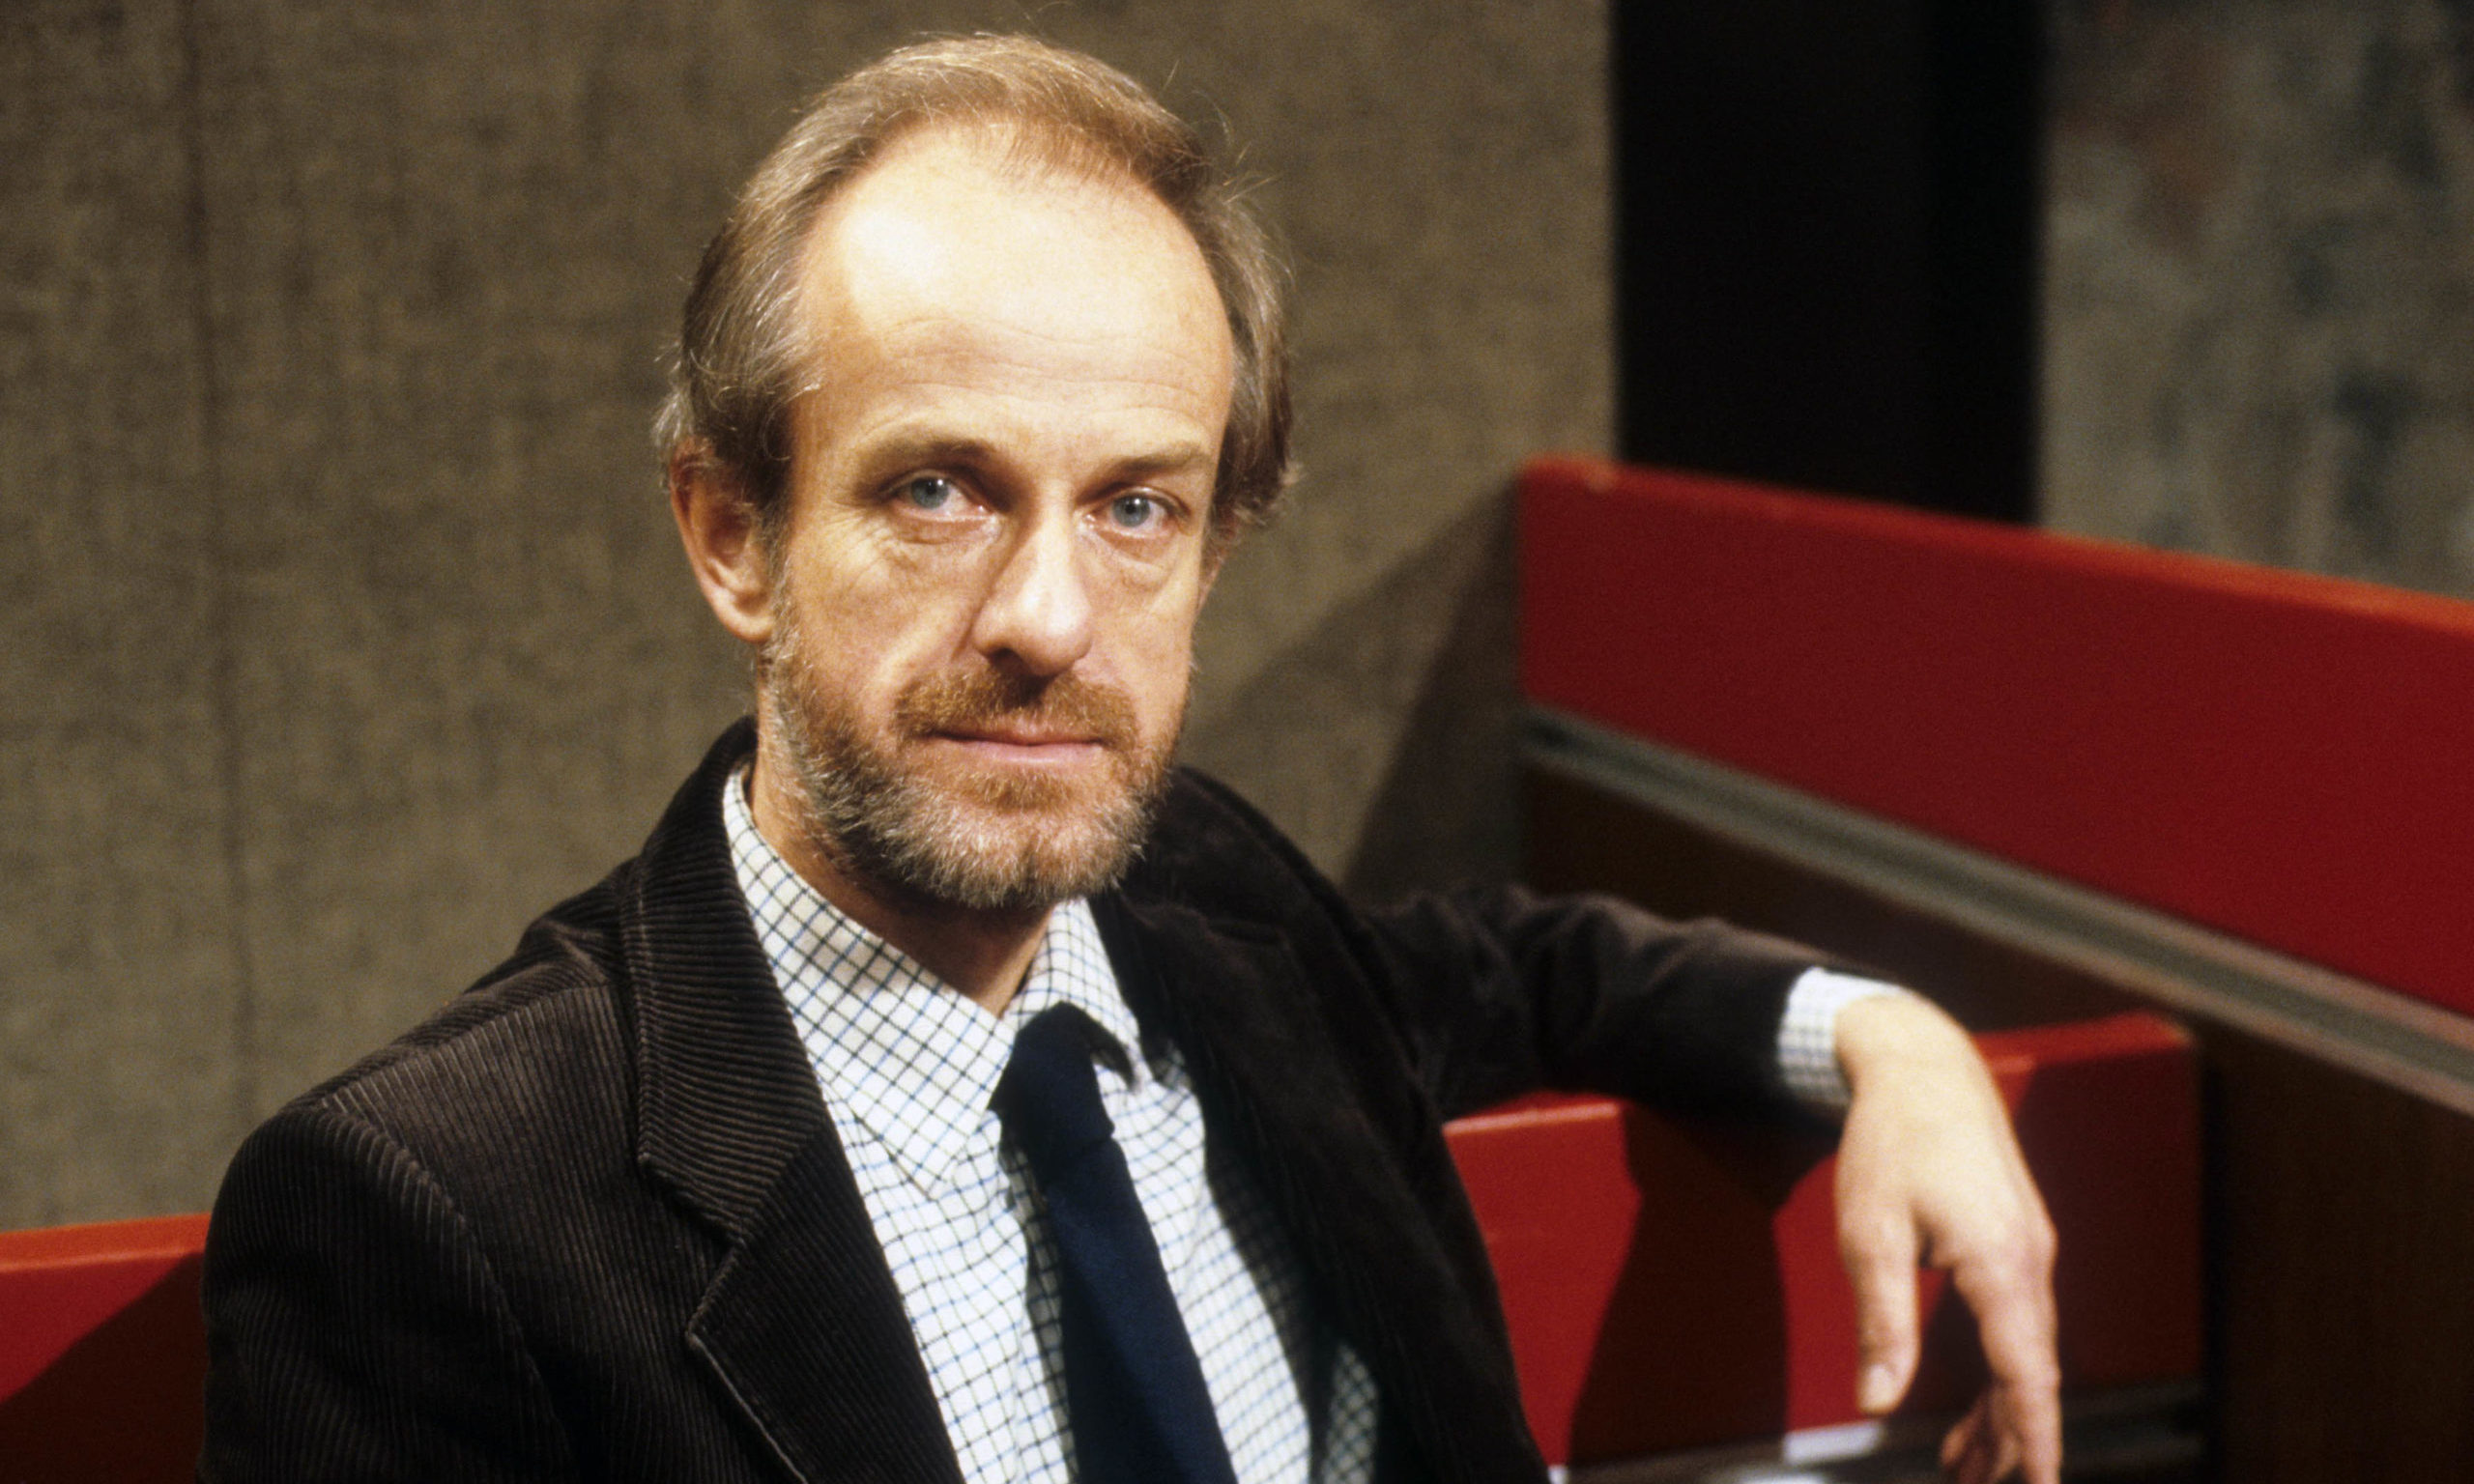 Editorial use only Mandatory Credit: Photo by ITV/Shutterstock (1277458cd) Julian Curry as Dr Peter Curtis 'Crown Court' TV Programme. - 1983 BRAINWASHED Roy Howard and wife Jennifer are accused of kidnapping and imprisoning their daughter Clare.